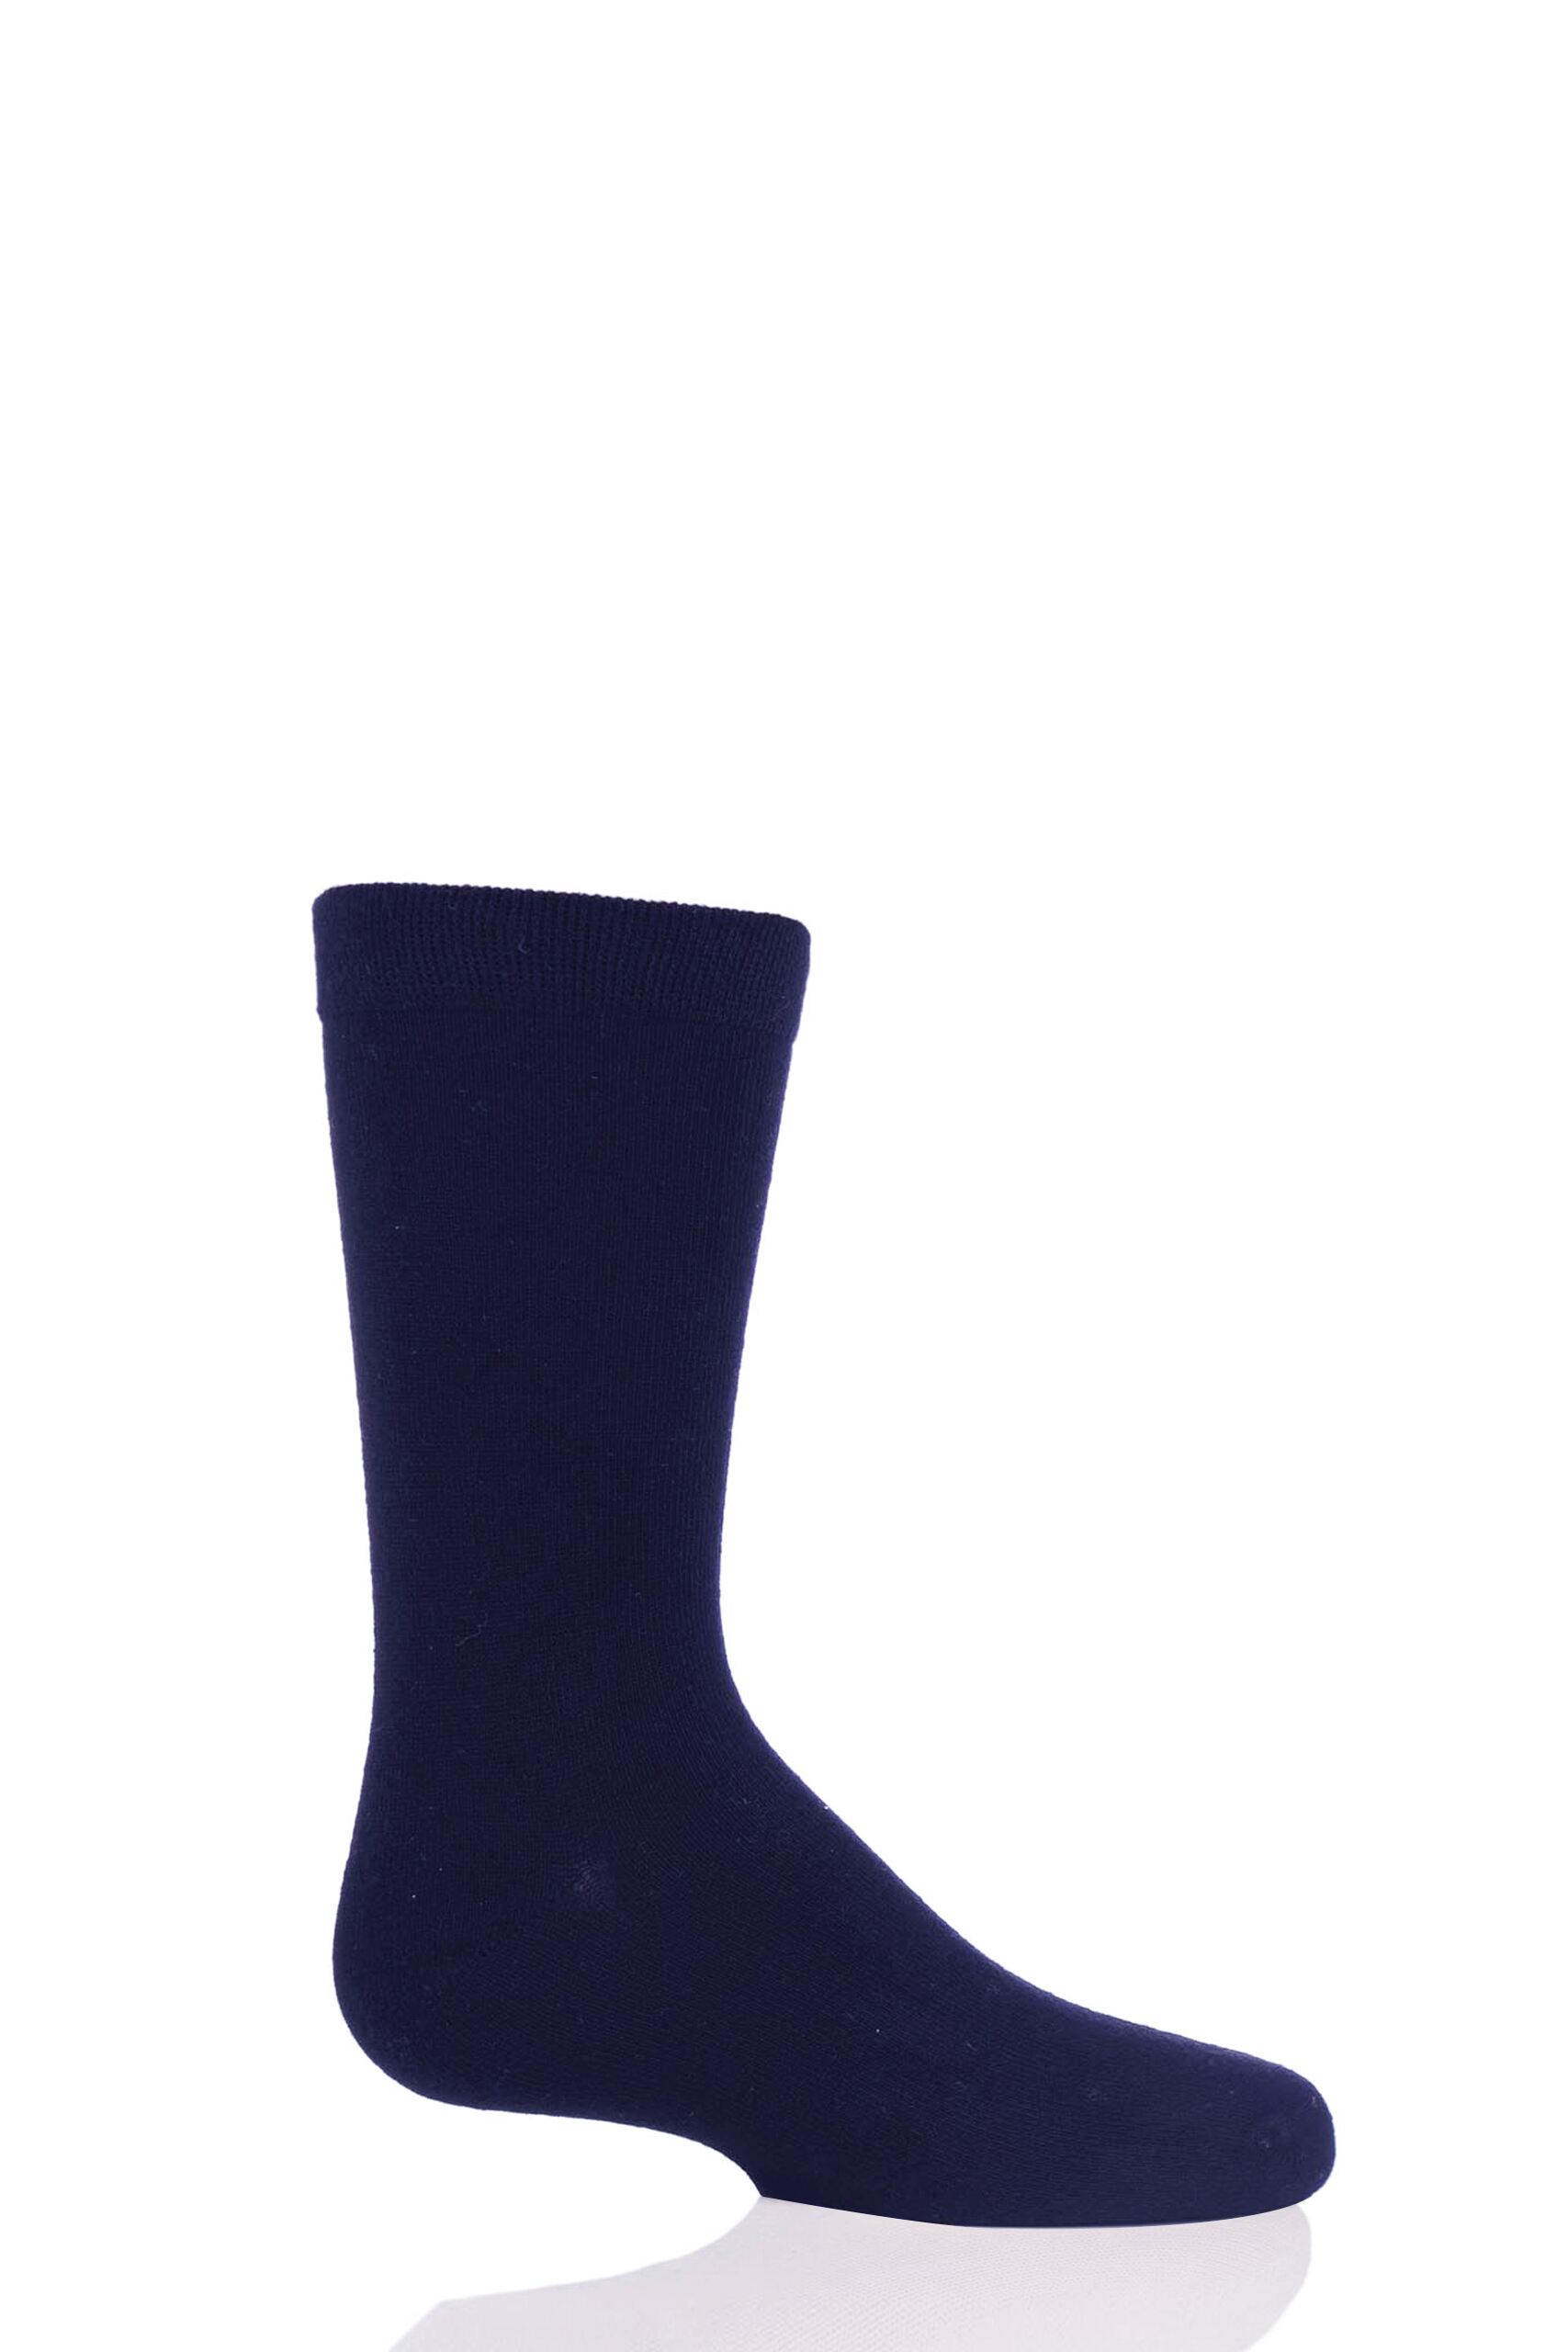 Image of 1 Pair Navy Plain Bamboo Socks with Comfort Cuff and Smooth Toe Seams Kids Unisex 9-12 Kids (4-7 Years) - SOCKSHOP